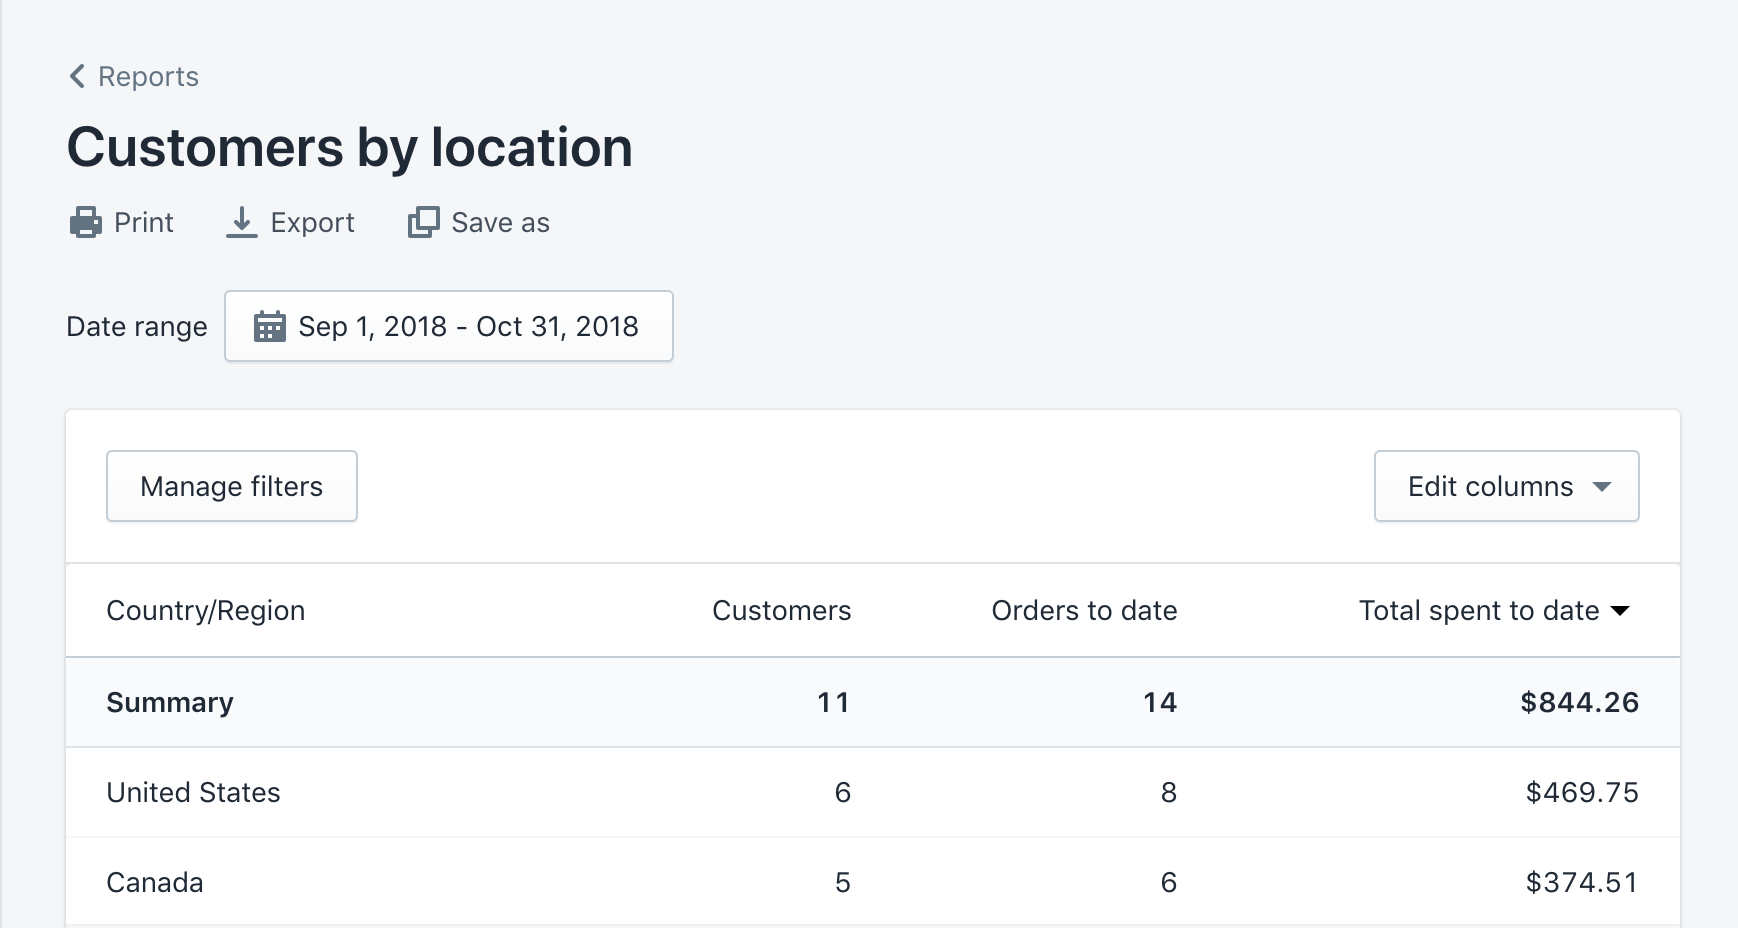 Customers by location report